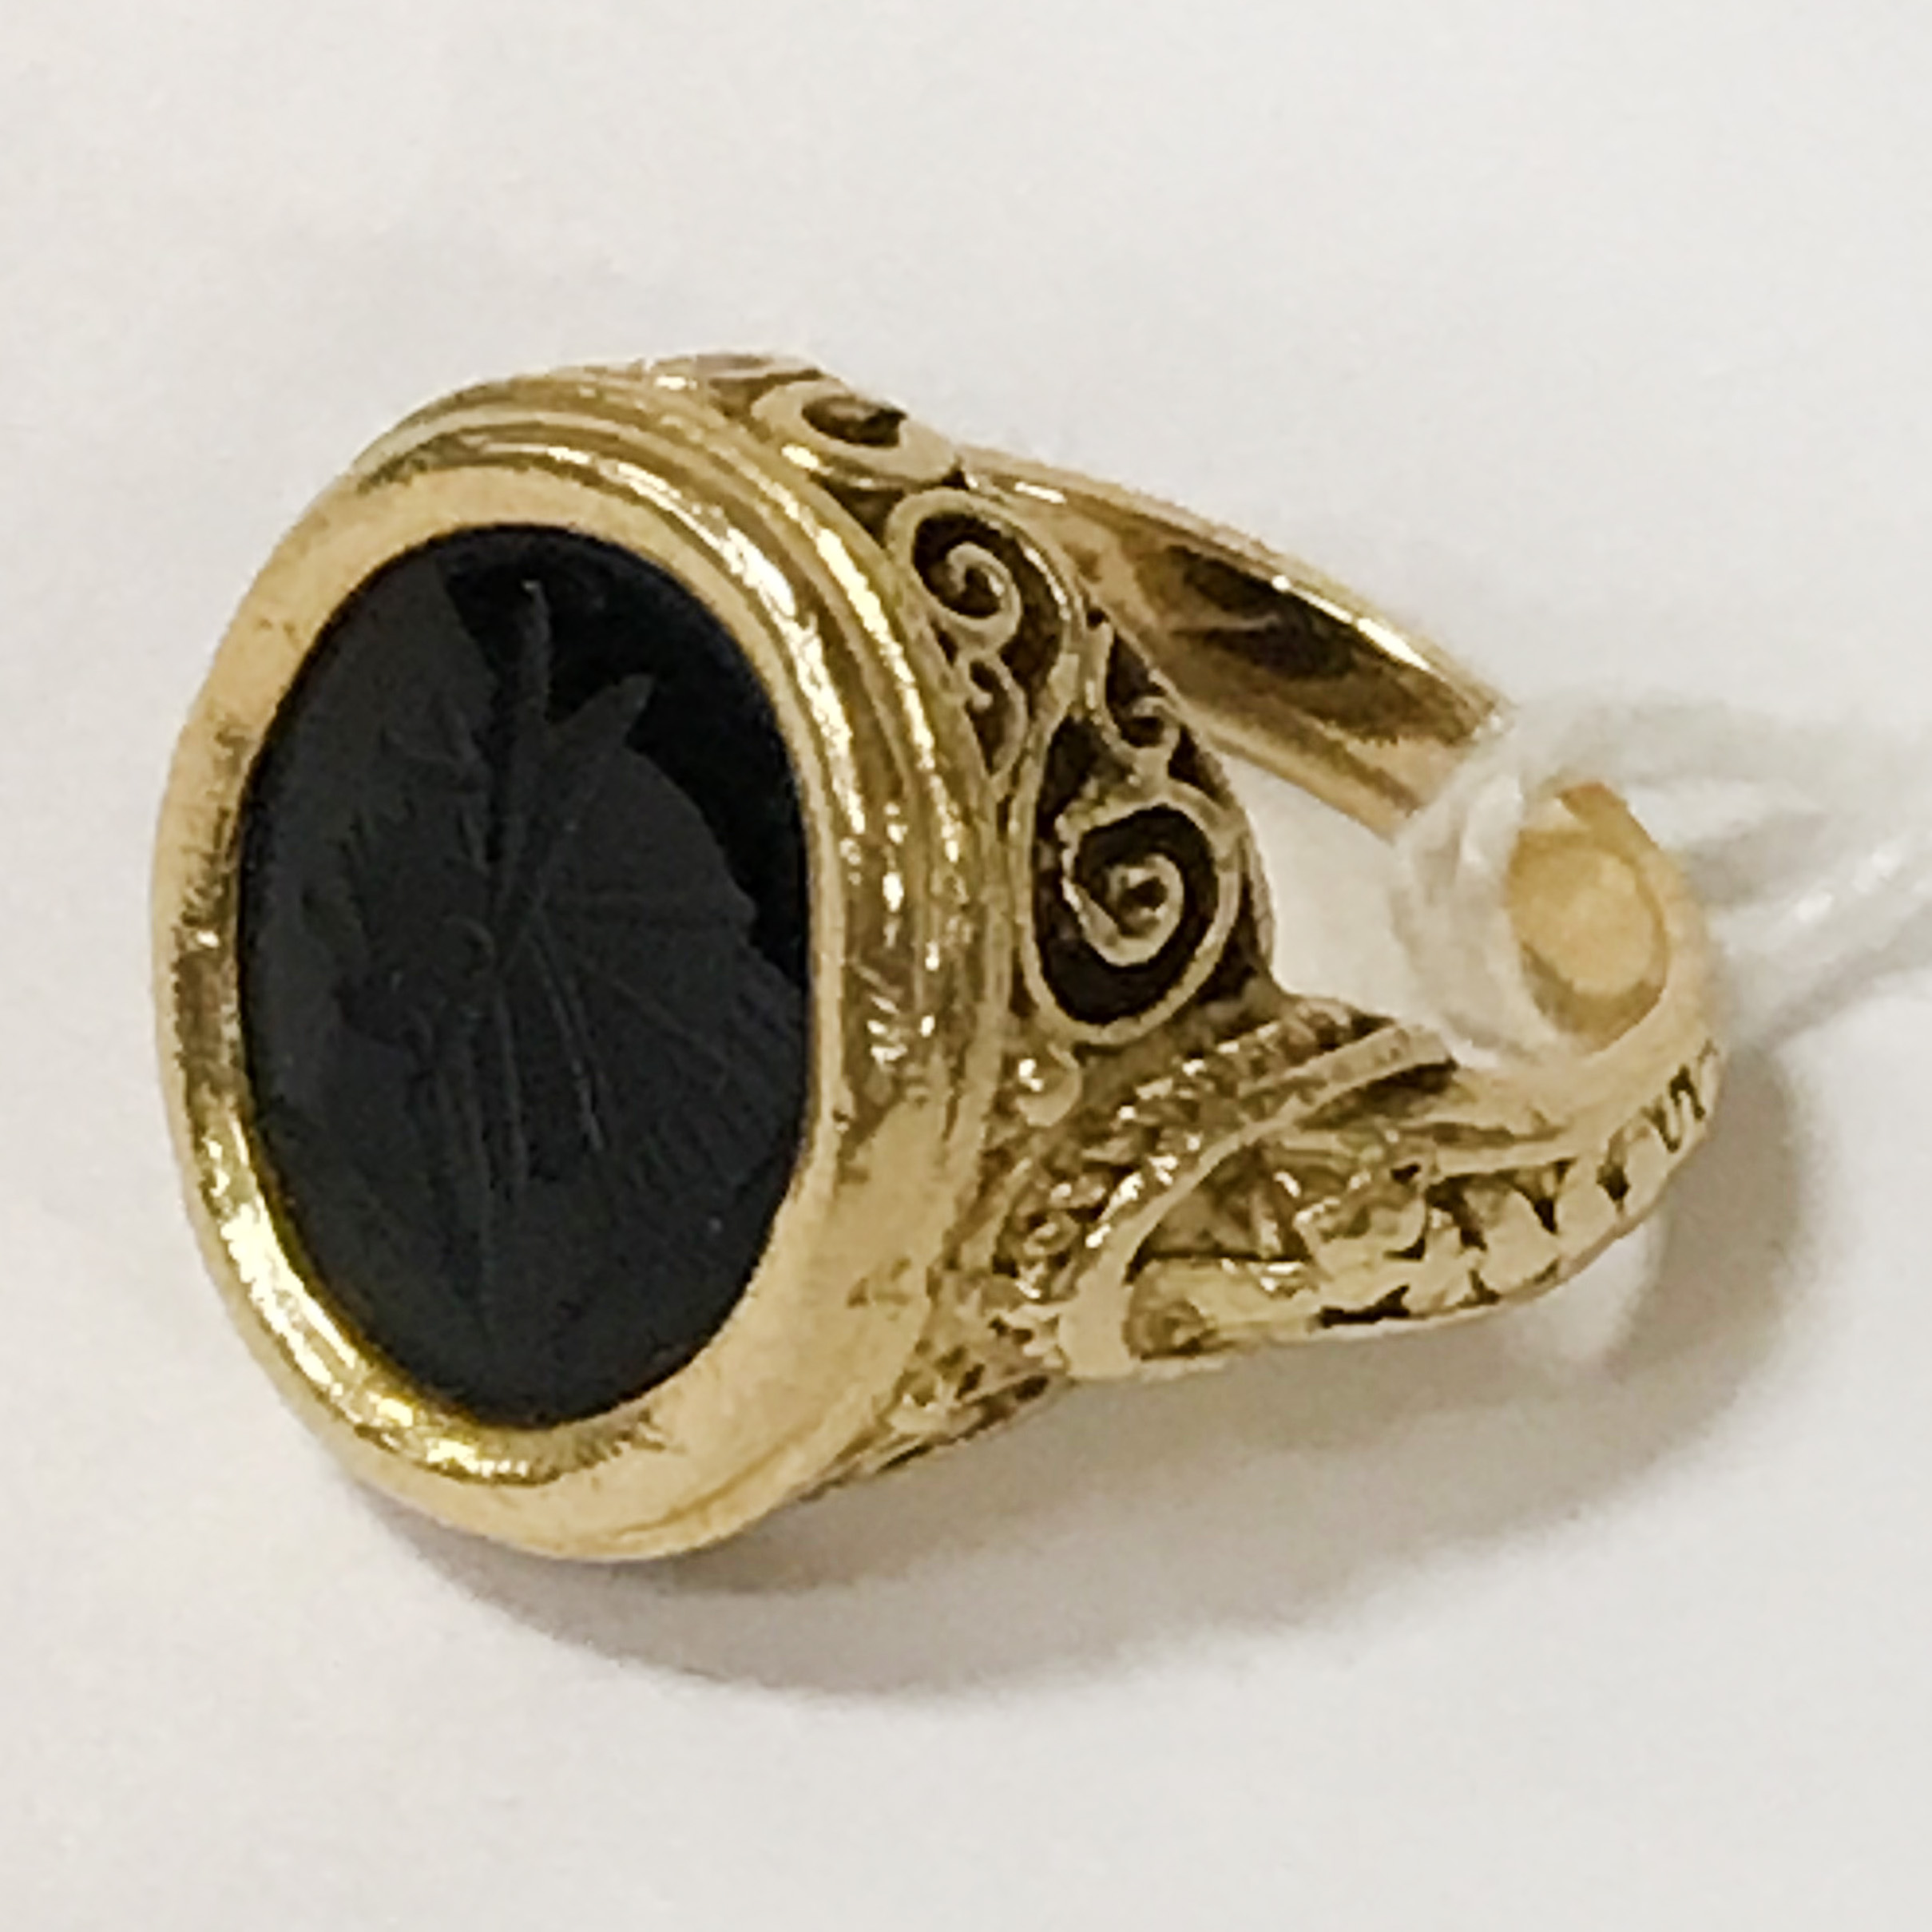 18CT YELLOW GOLD SIGNET RING - APPROX 8 GRAMS